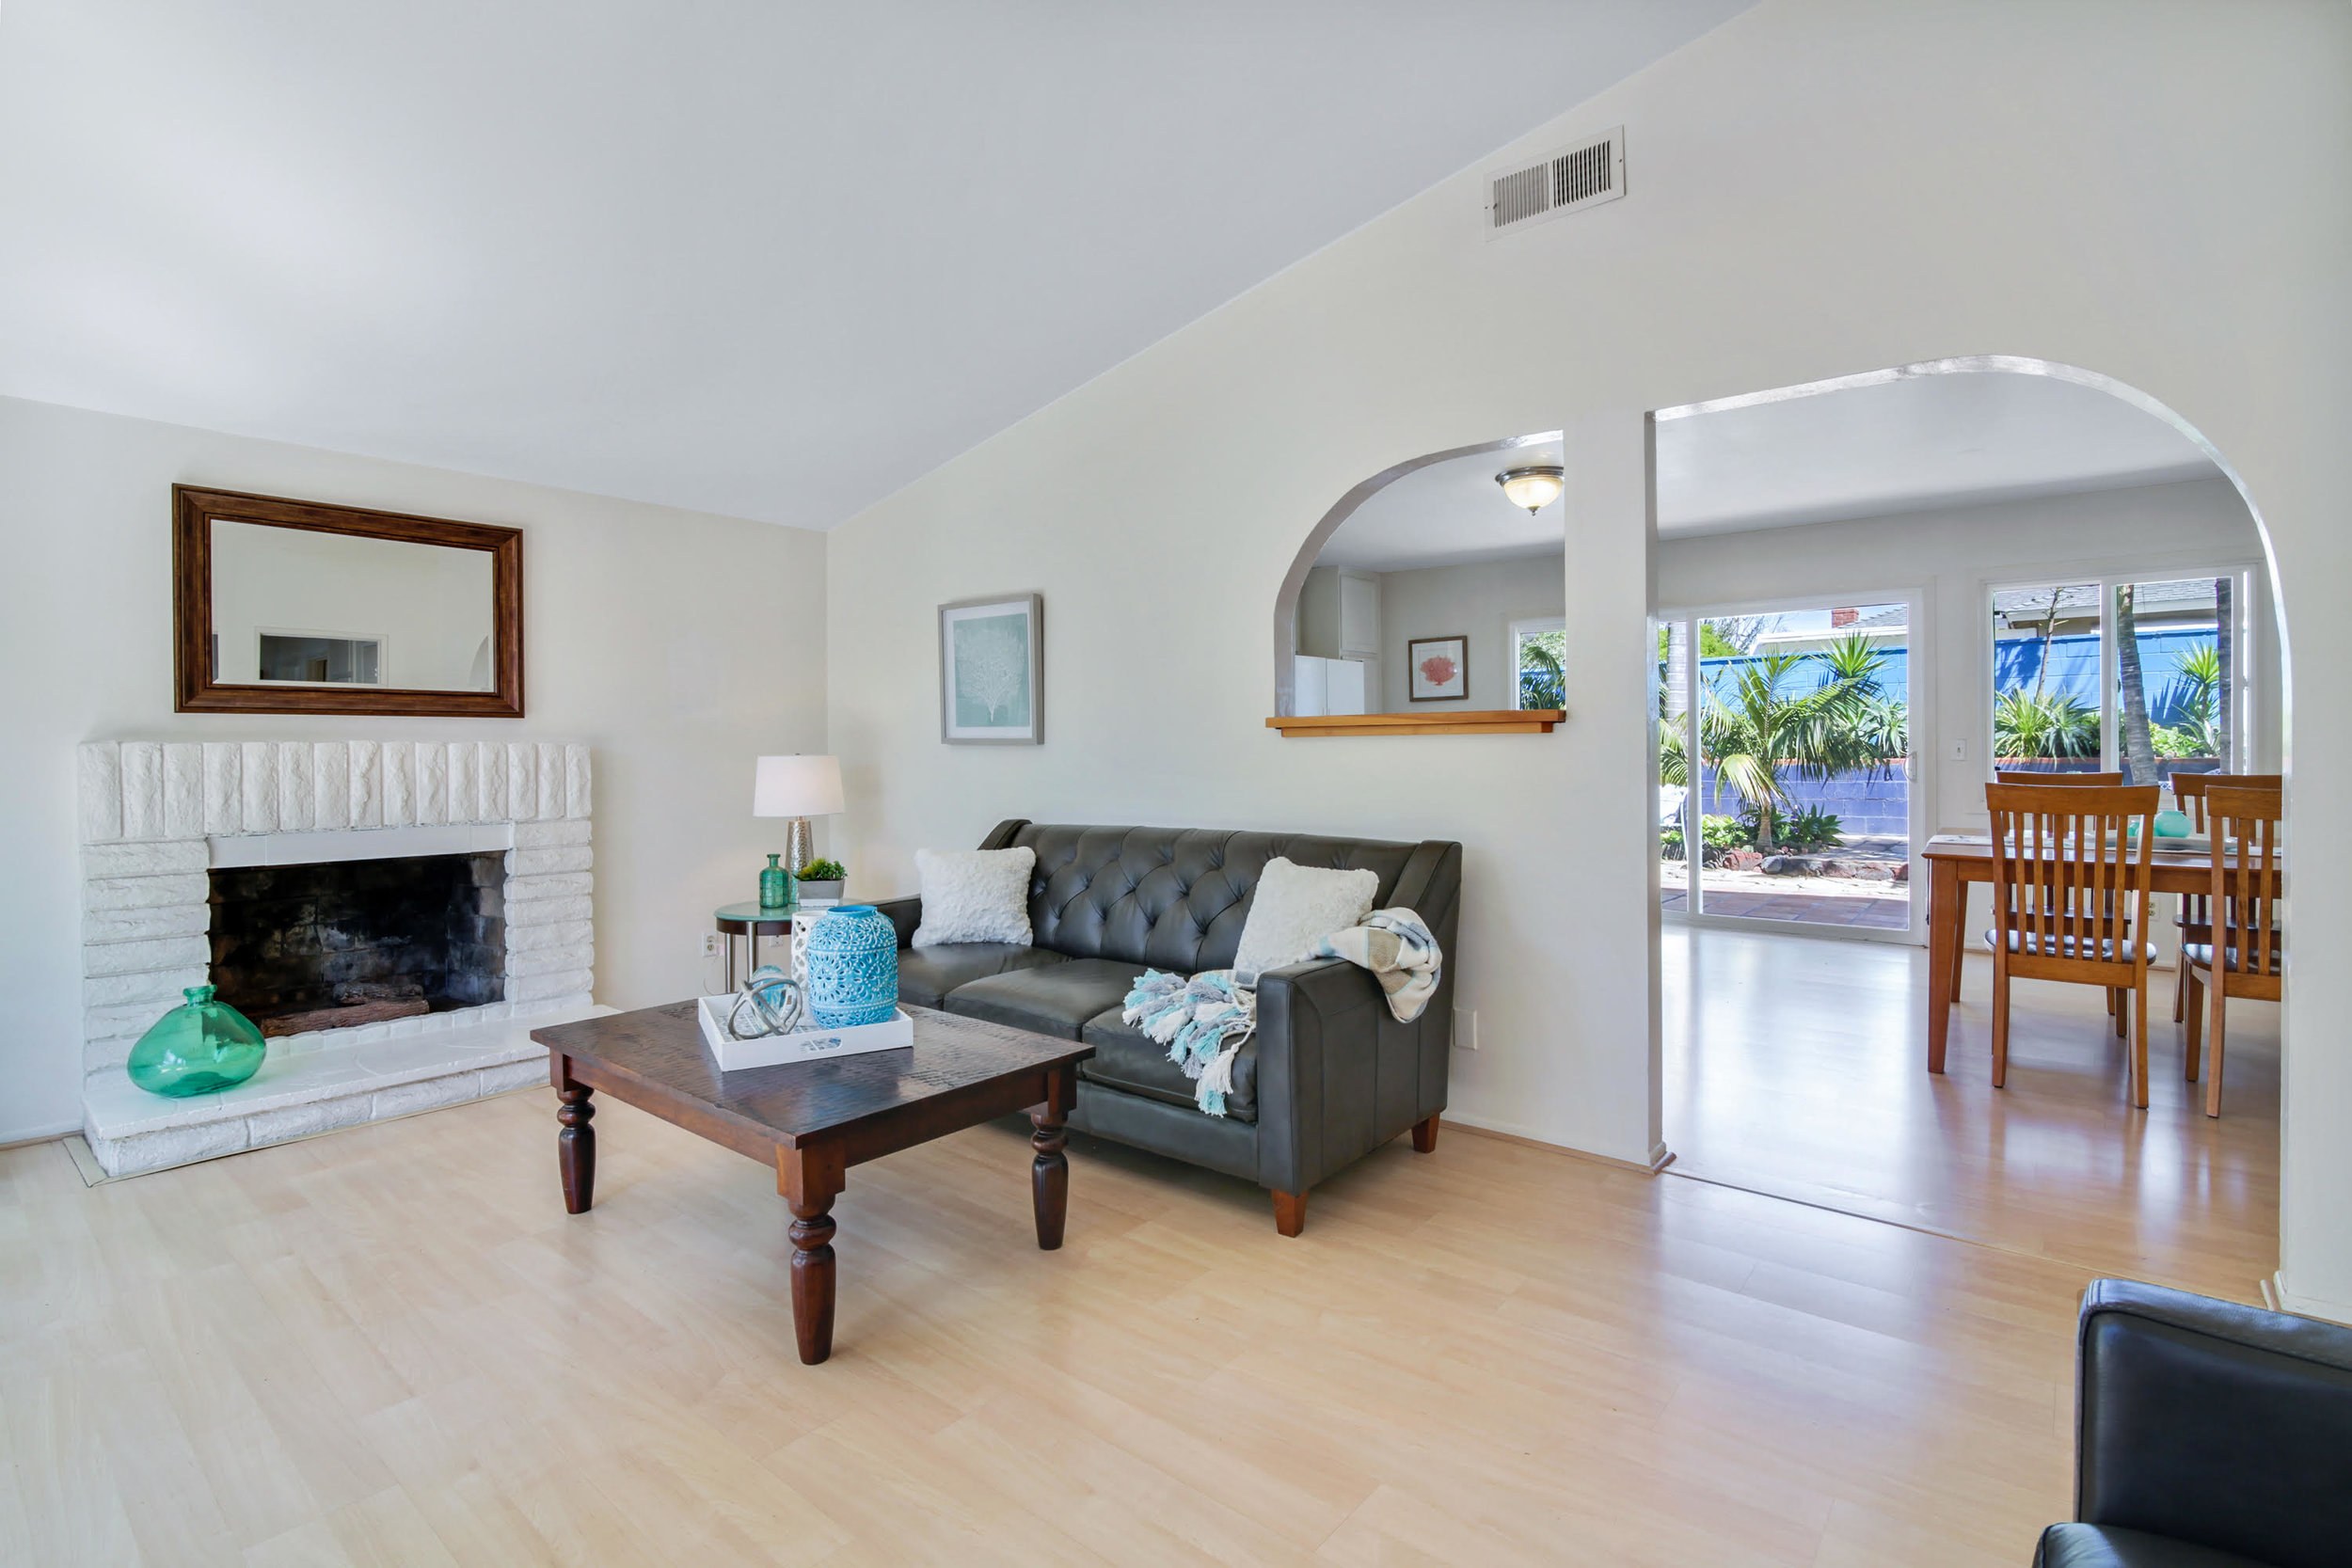 SOLD FOR $785,000   Dana Point  3 BR | 2 BTH | 1,165 SQ/FT